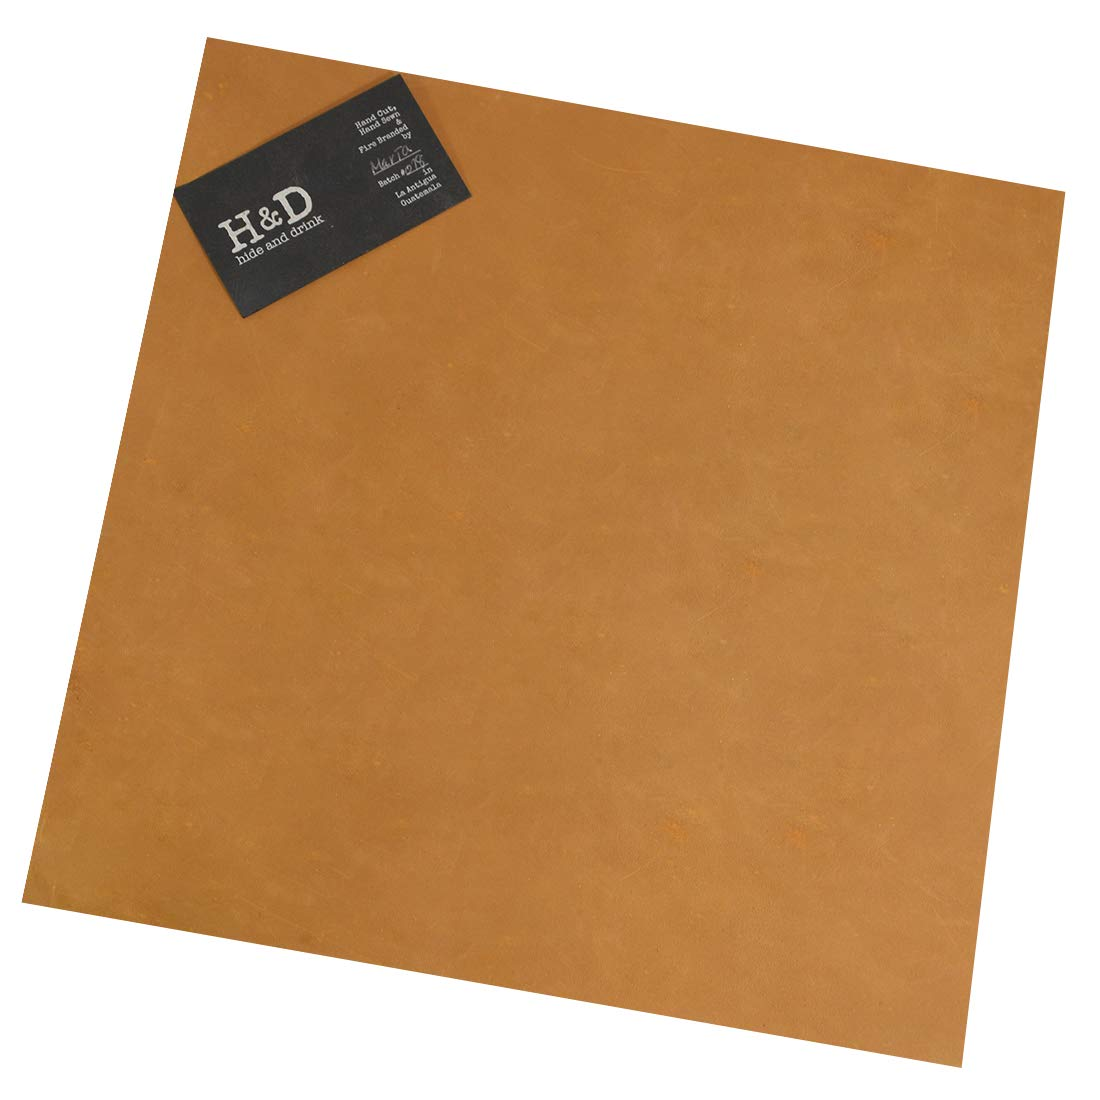 12 x 12 in. Heavy Weight Thick Leather Square by Hide /& Drink :: Old Tobacco for Crafts//Tooling//Hobby Workshop 3.5mm